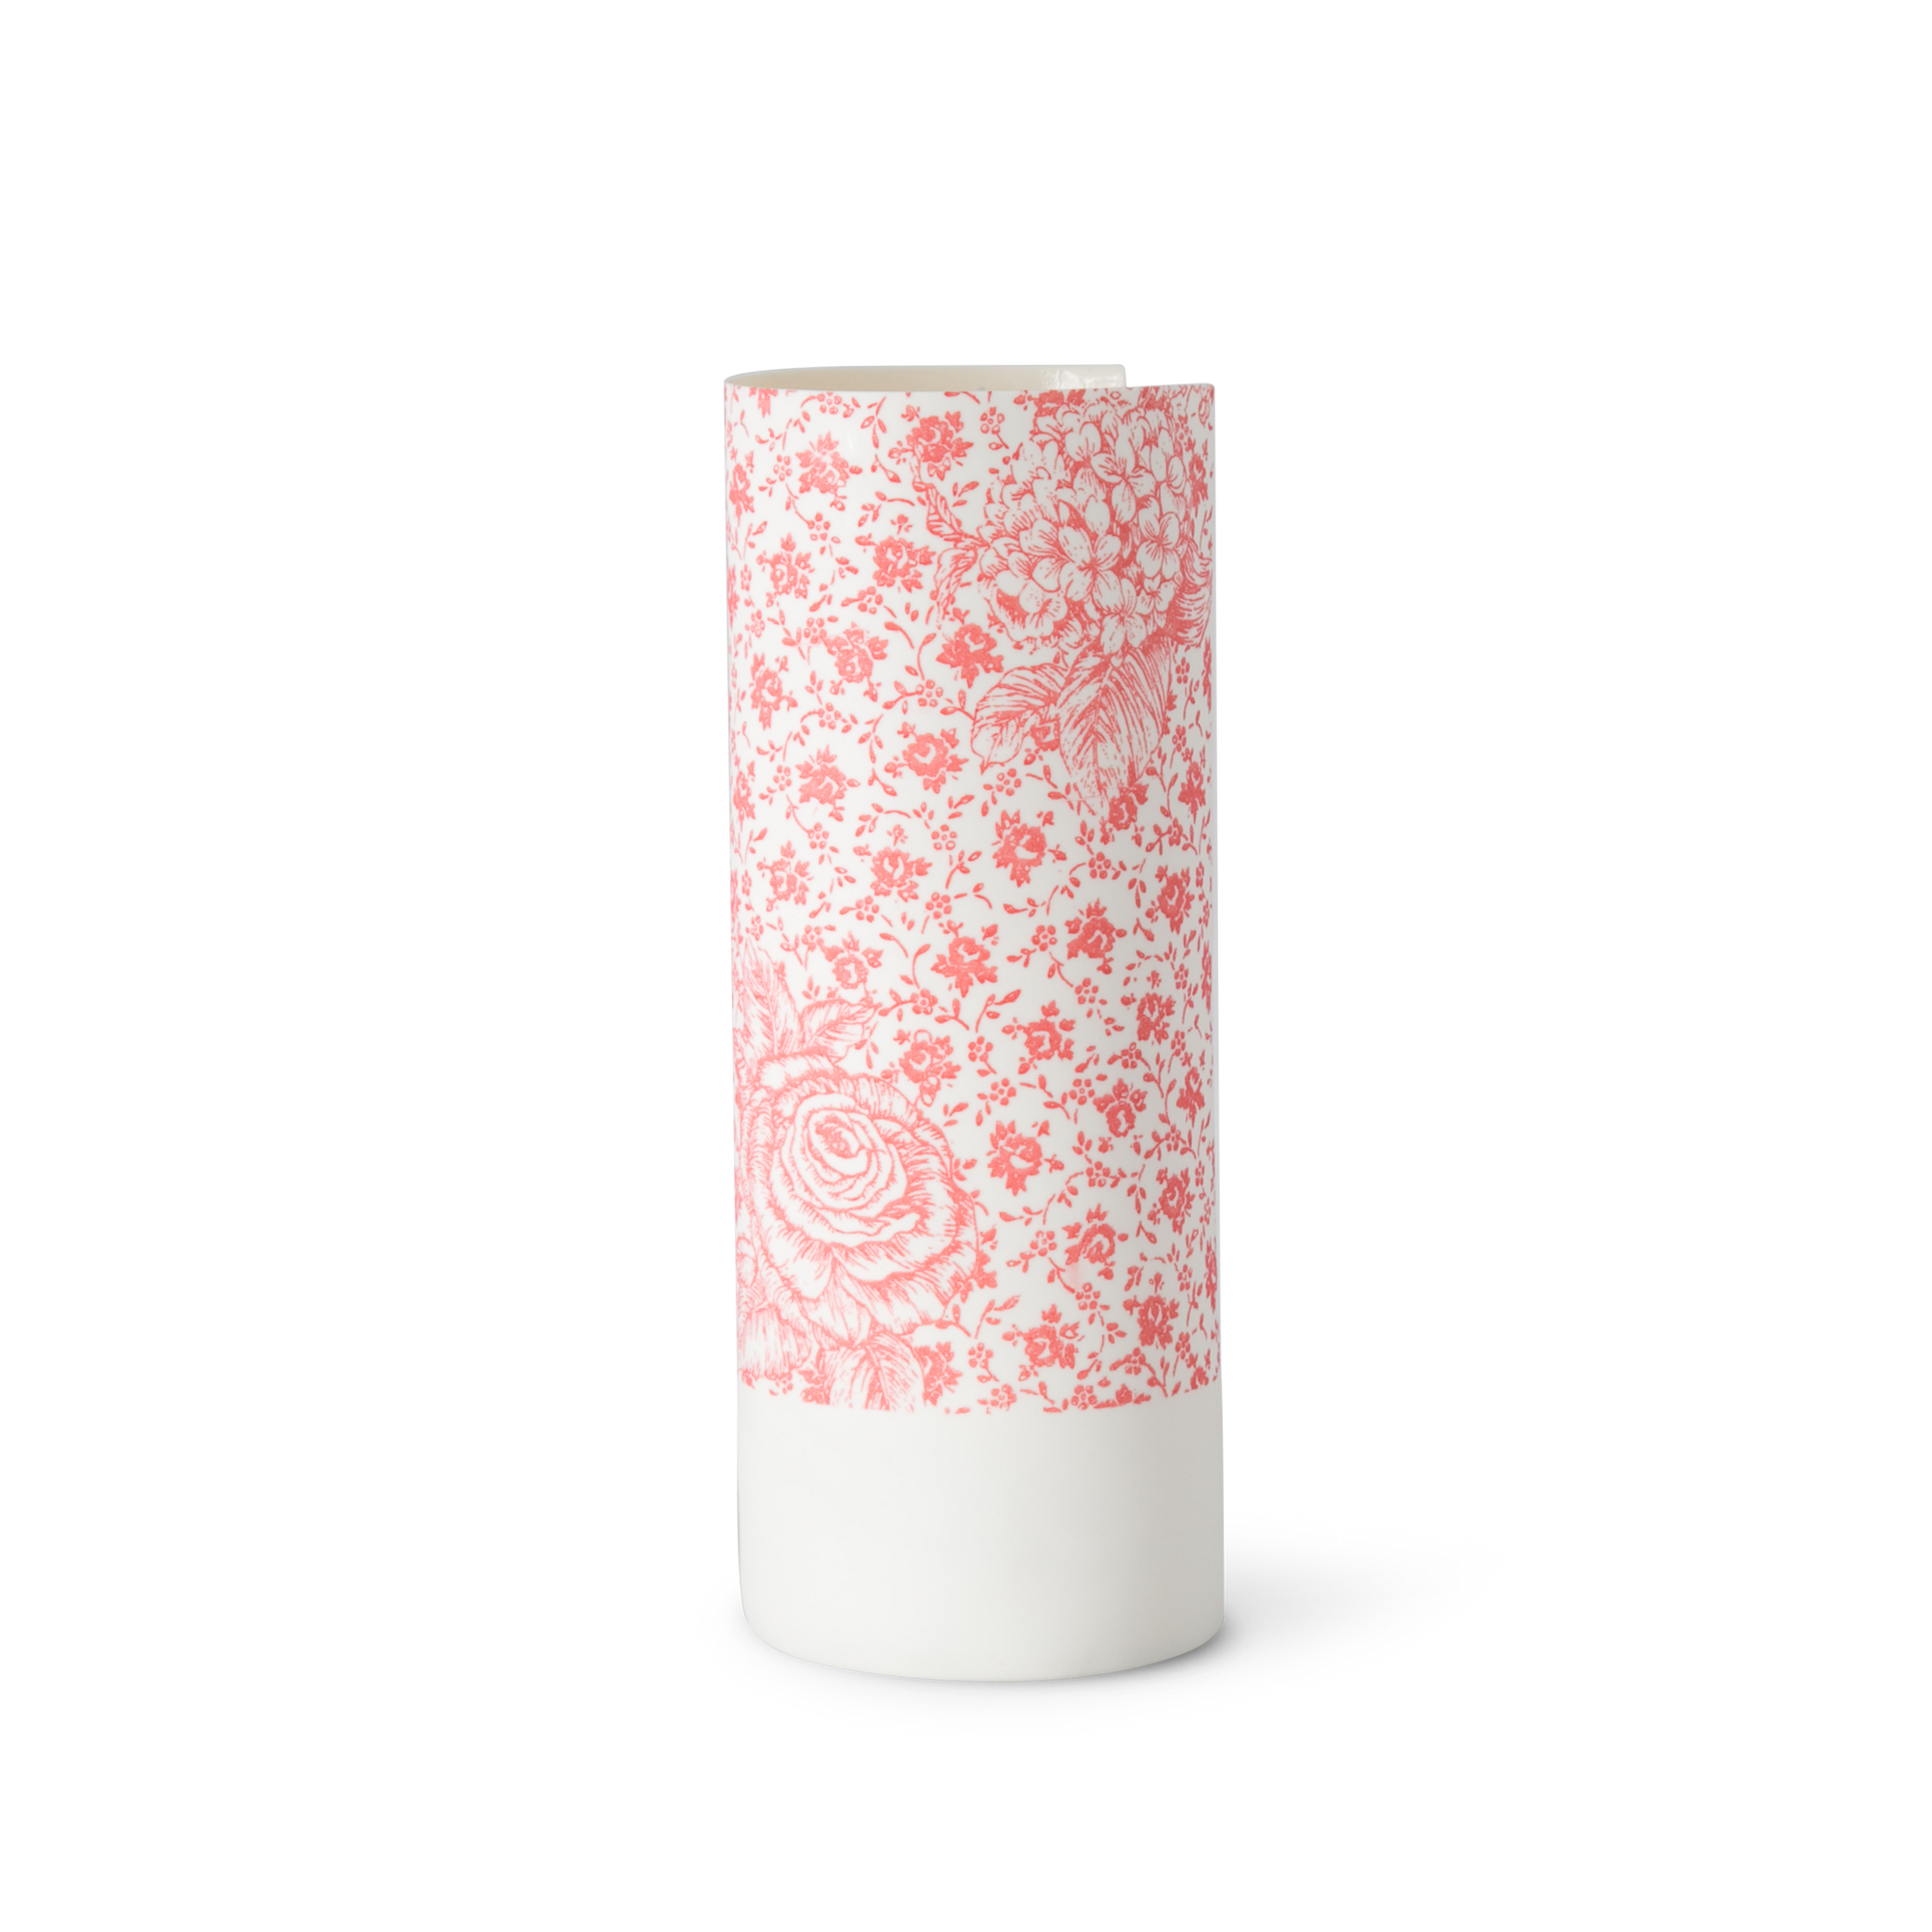 Illuminator Vase Tall Big Rose Small Rose